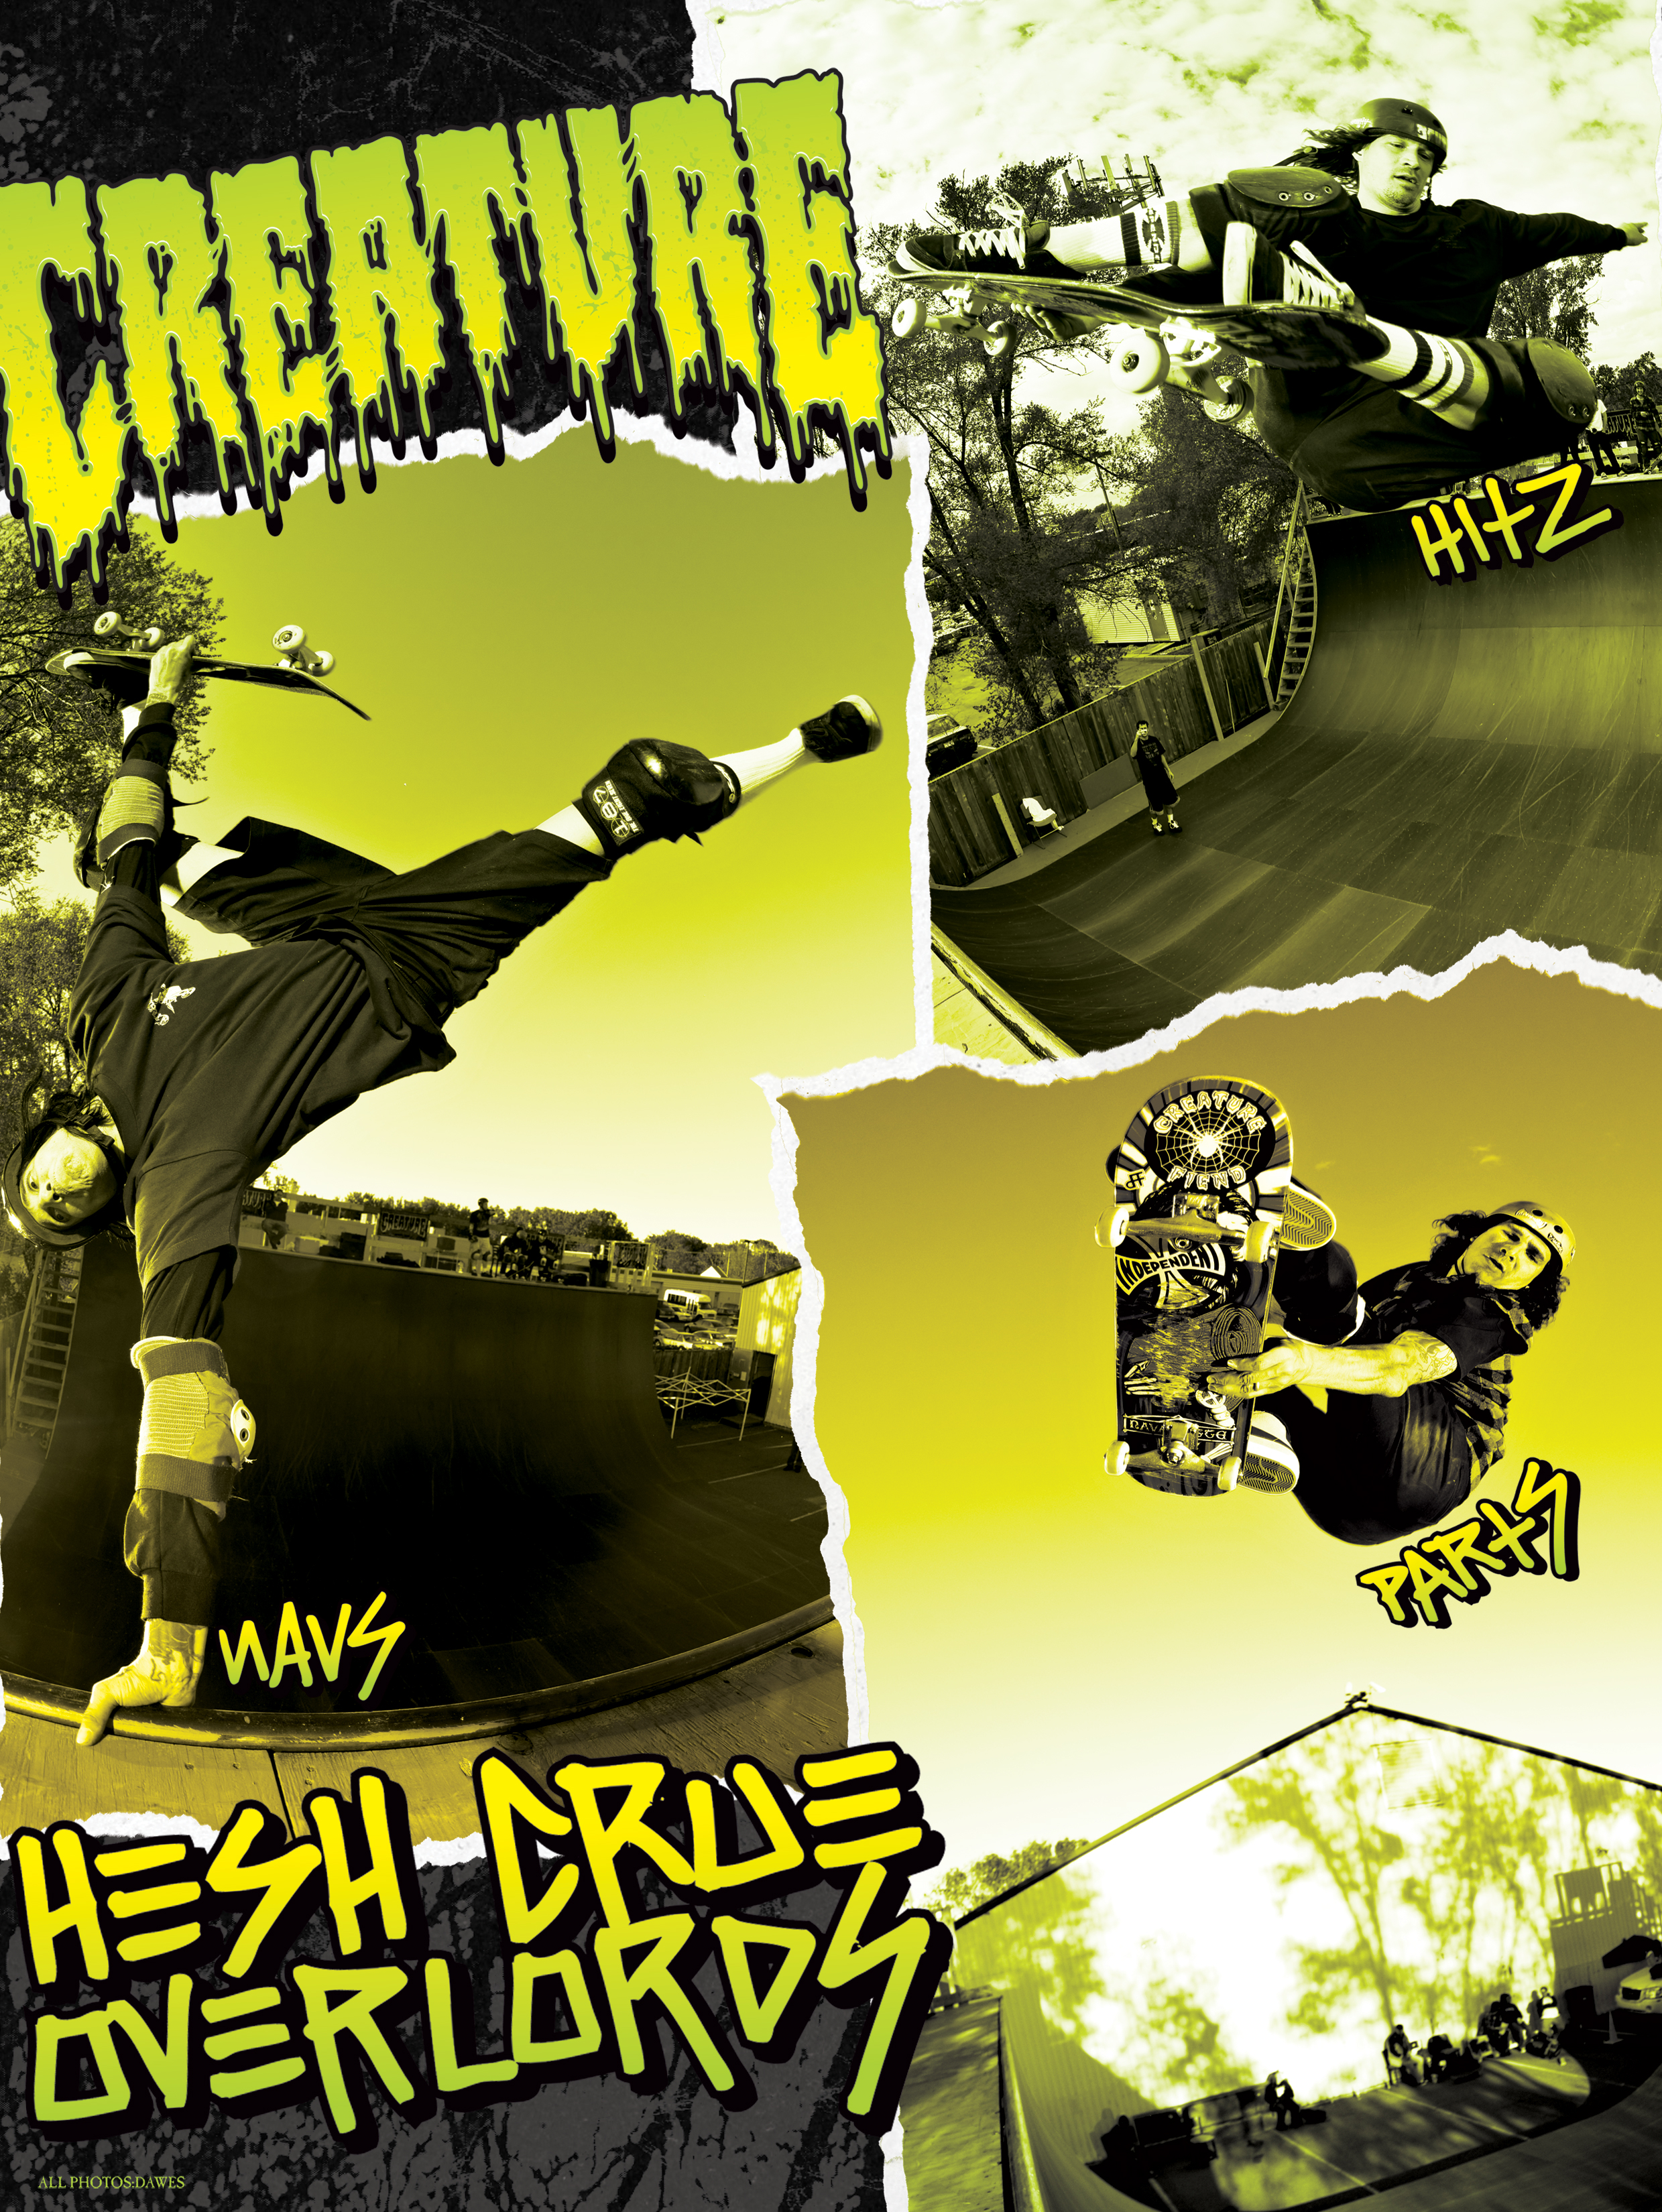 CREATURE SKATEBOARDS - HESH CRUE